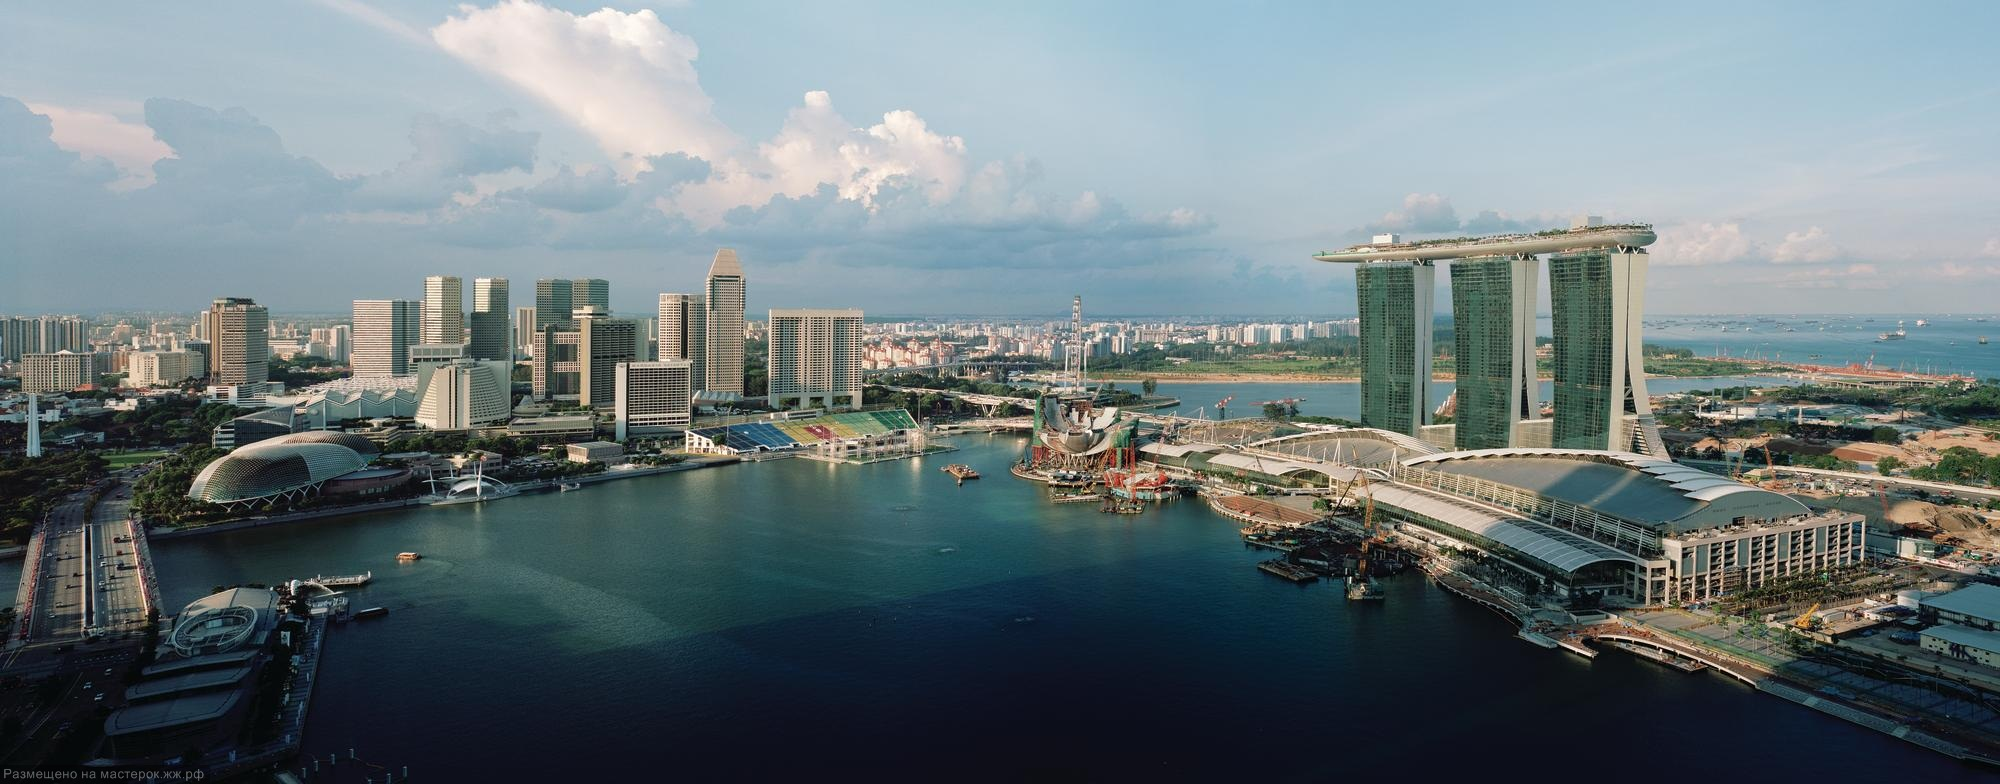 The Marina Bay Sands complex brings a taste of Las Vegas to Singapore. Three 55-story hotel towers are topped by a skypark that culminates in a 213-foot-long cantilever—the signature move in a 38-acre complex that also includes a casino, a retail complex,